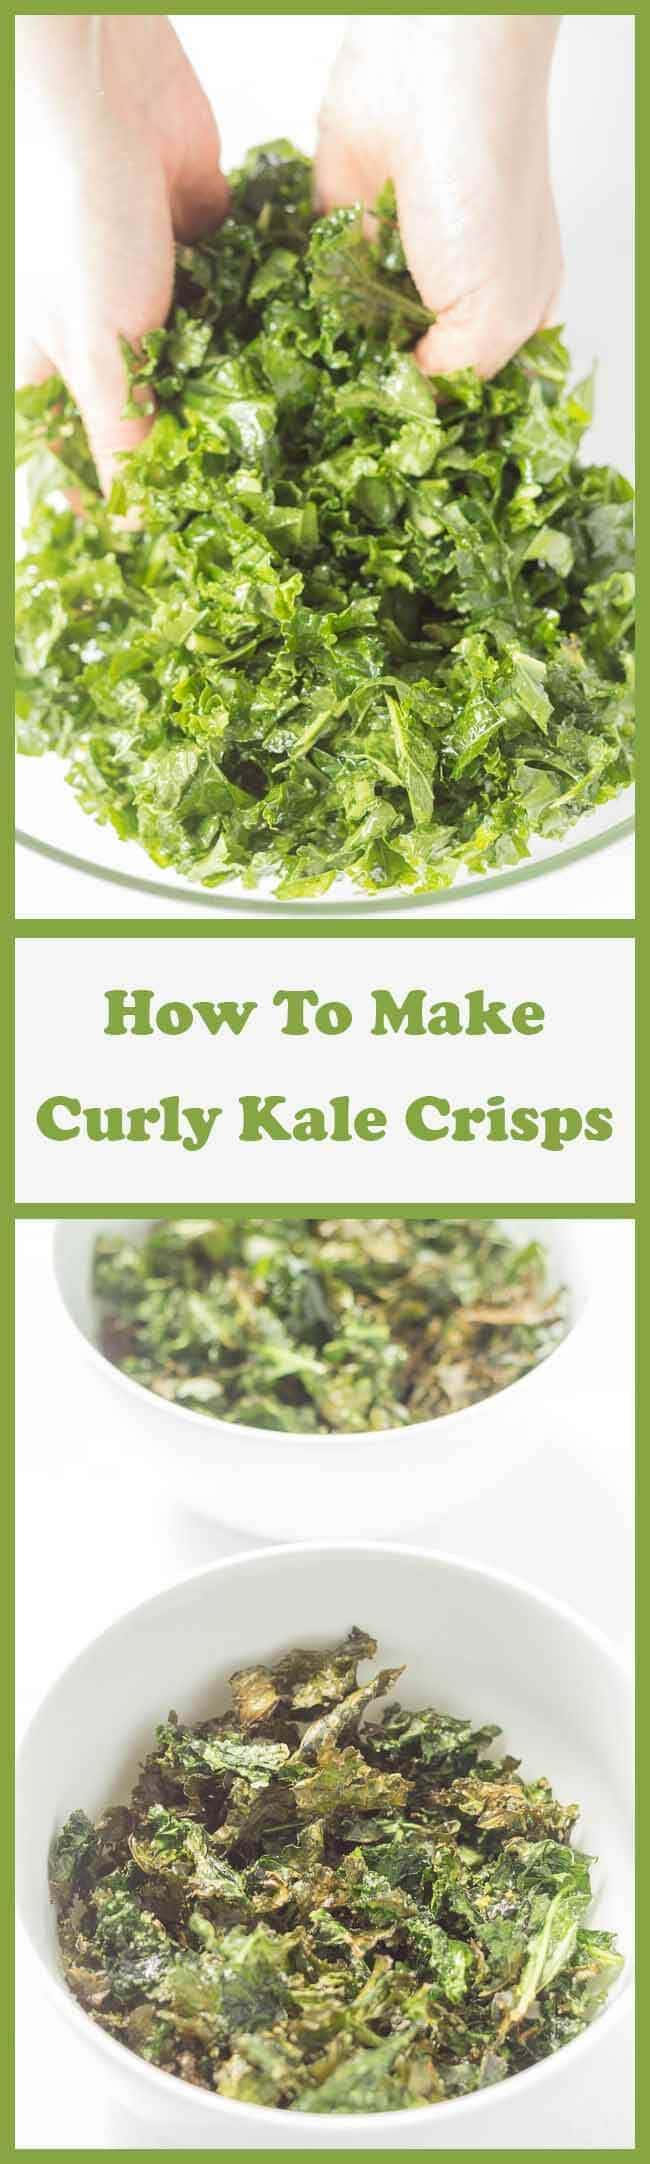 Curly kale crisps make an ideal quick healthy snack recipe. Here I show you how to make curly kale crisps in just 15 minutes. All that's needed is 200g curly kale, 1 tbsp. olive oil and a little salt to season. You'll love this easy light and crispy savoury delight!